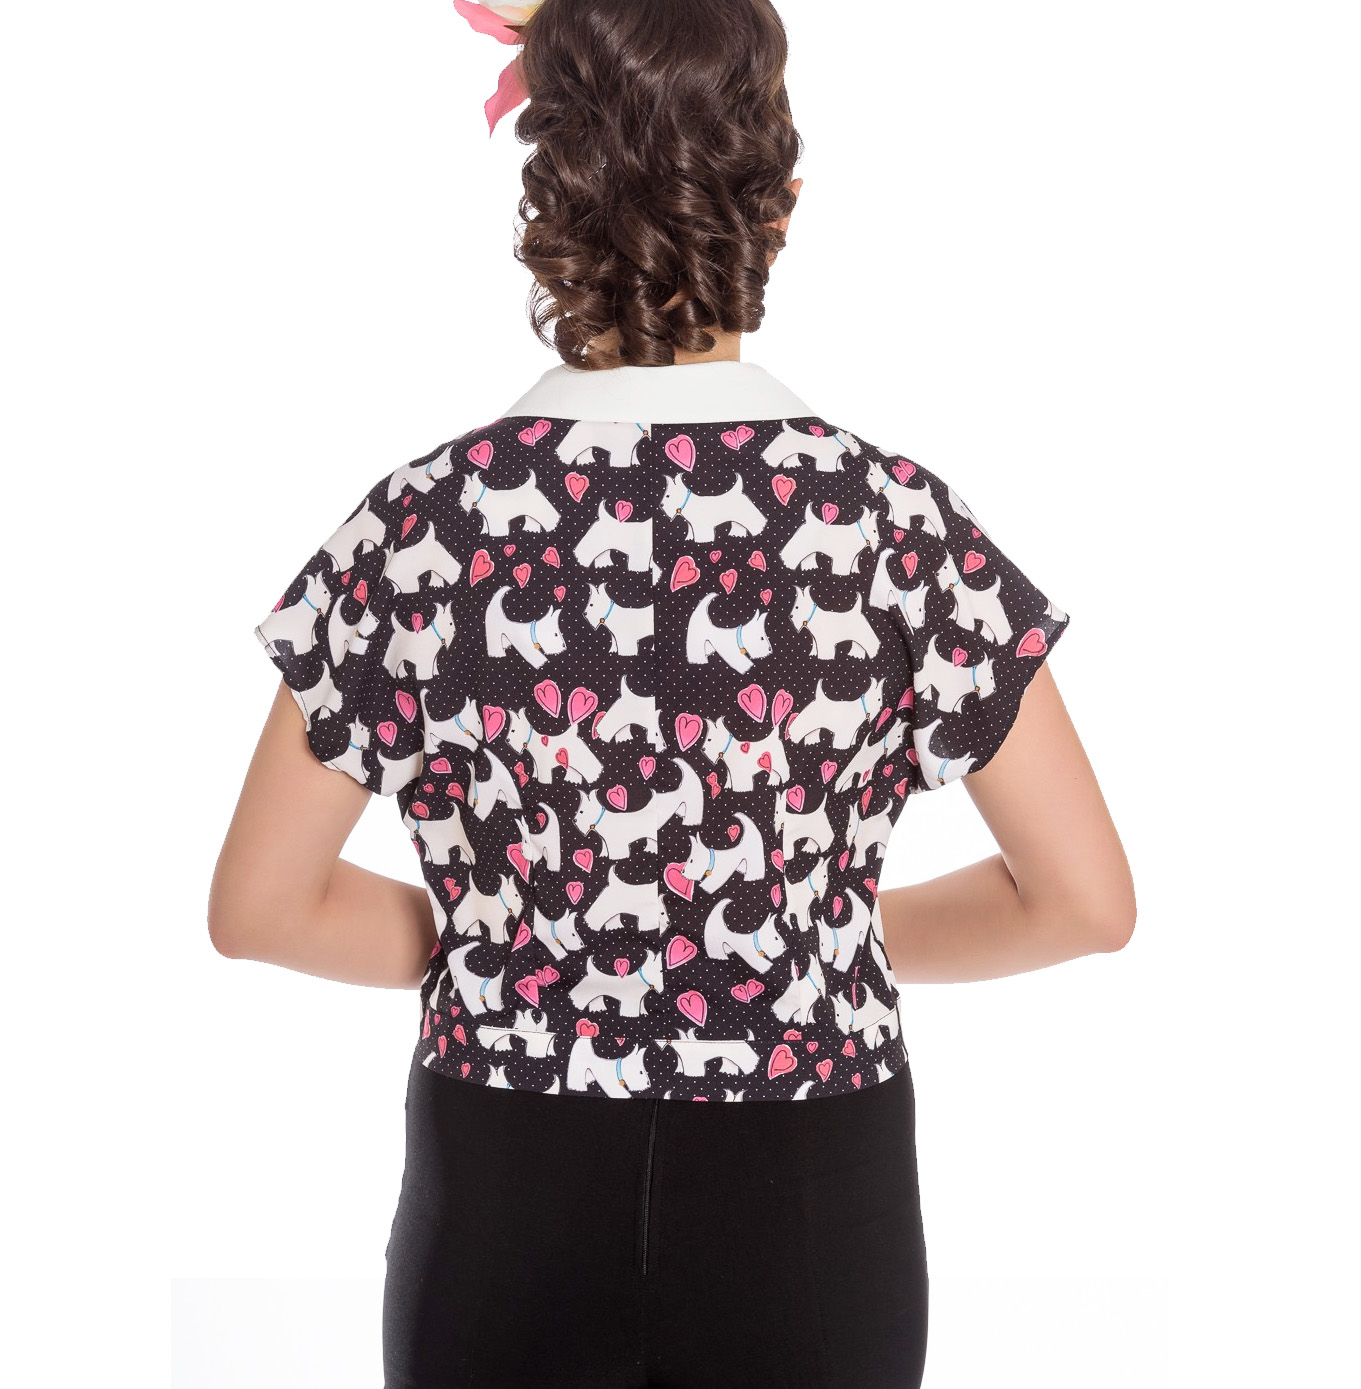 Hell-Bunny-50s-Retro-Top-Scottie-Dog-Heart-AGGY-Cropped-Blouse-Shirt-All-Sizes thumbnail 17